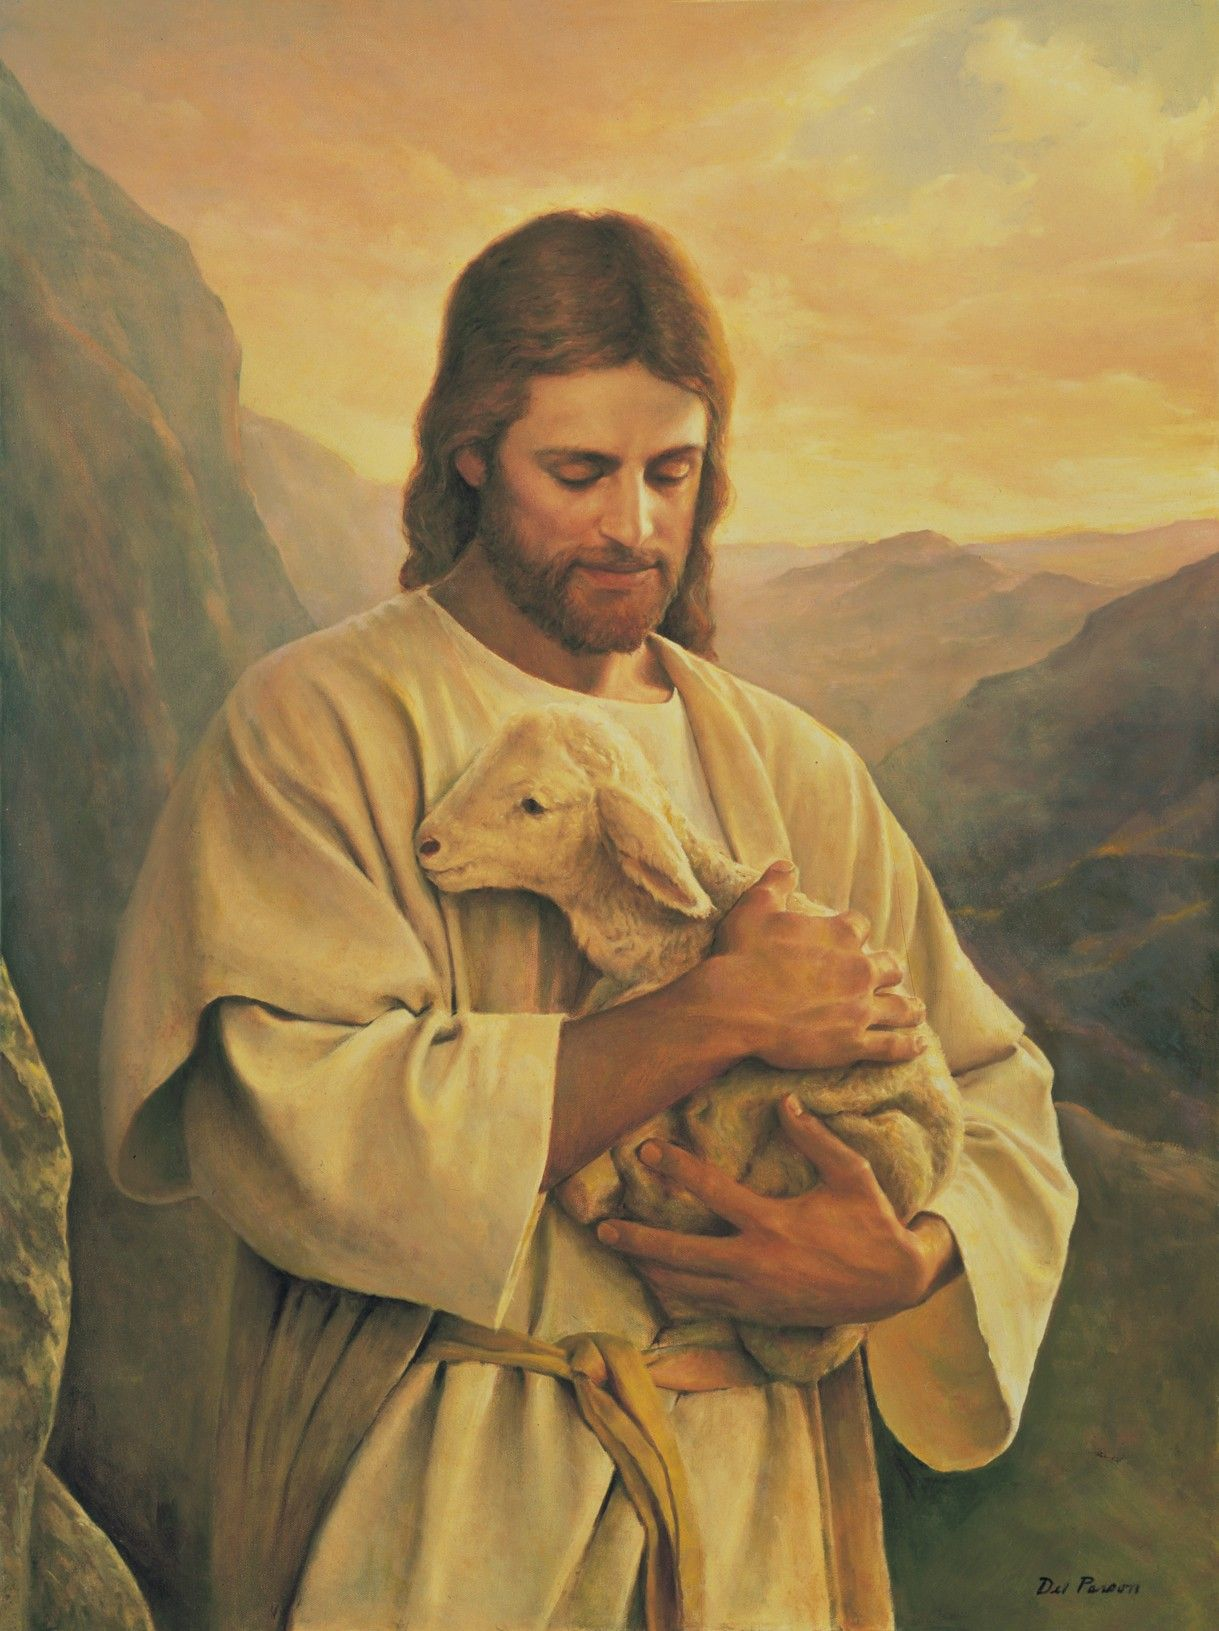 The Lost Lamb, by Del Parson; GAB 64; Luke 15:4–7; John 10:11–16; Alma 5:37–42 This image is to be used for Church purposes only.